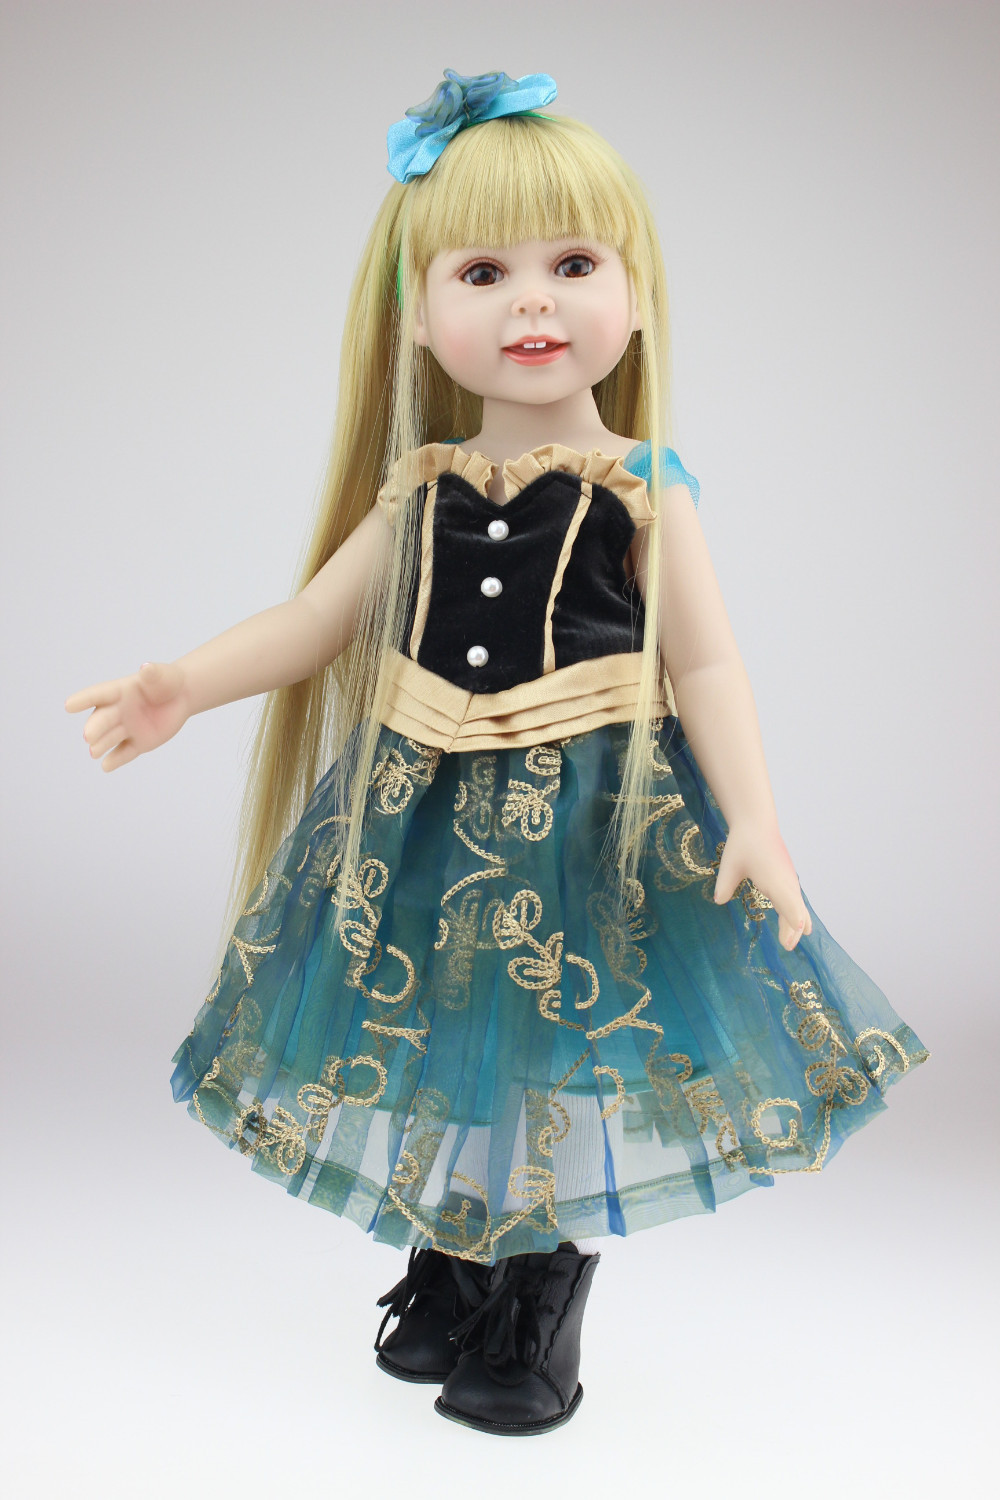 New design 18inches American girl doll Journey Girl Dollie& me  New Year present great girl gift new 23 inches lm230wf5 tld1 1920 x1080 lm230wf5 tld1 lm230wf5tld1 tld2